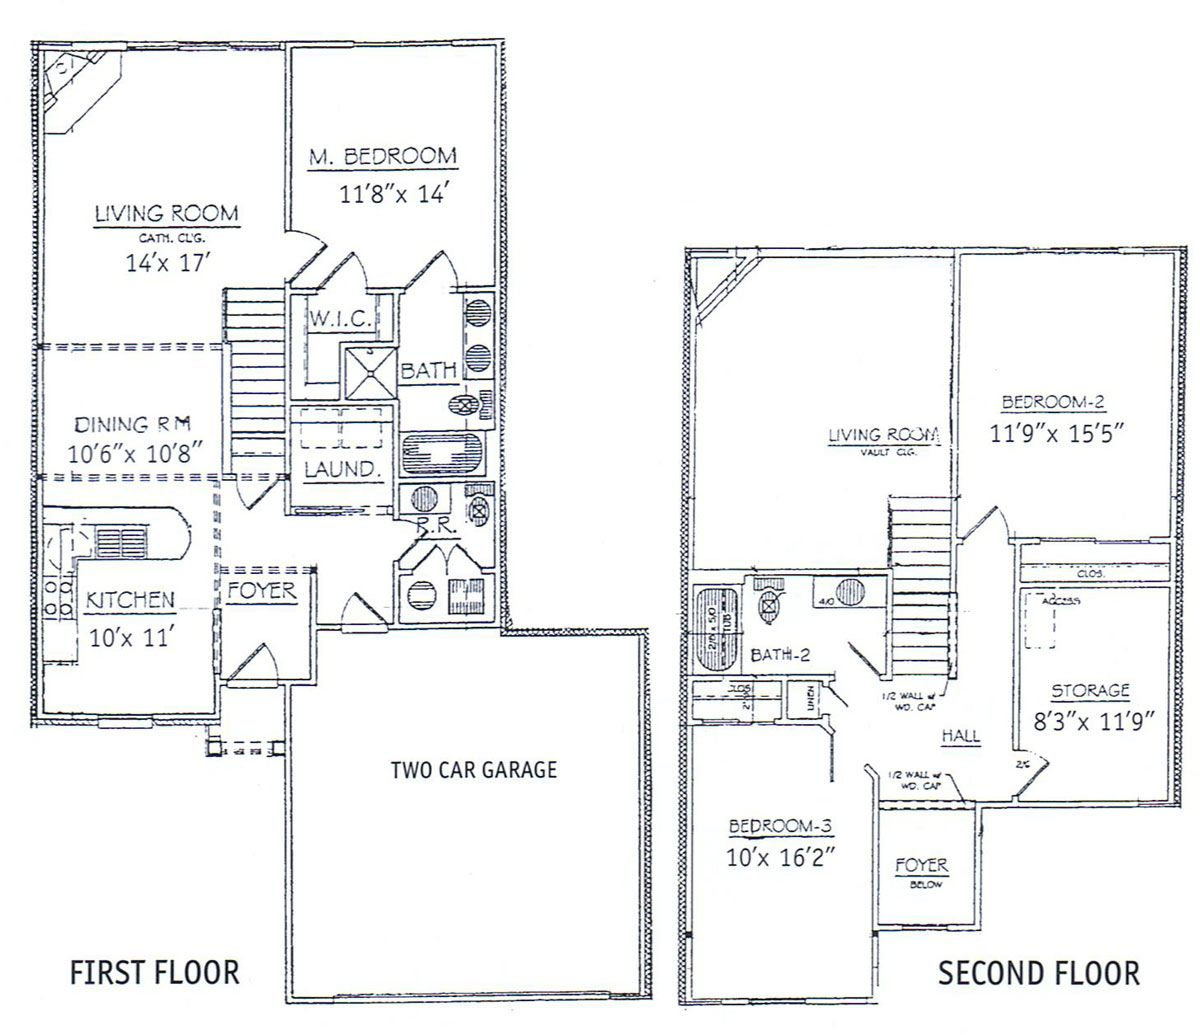 3 bedrooms floor plans 2 story bdrm basement the two for 5 bedroom house plans 2 story